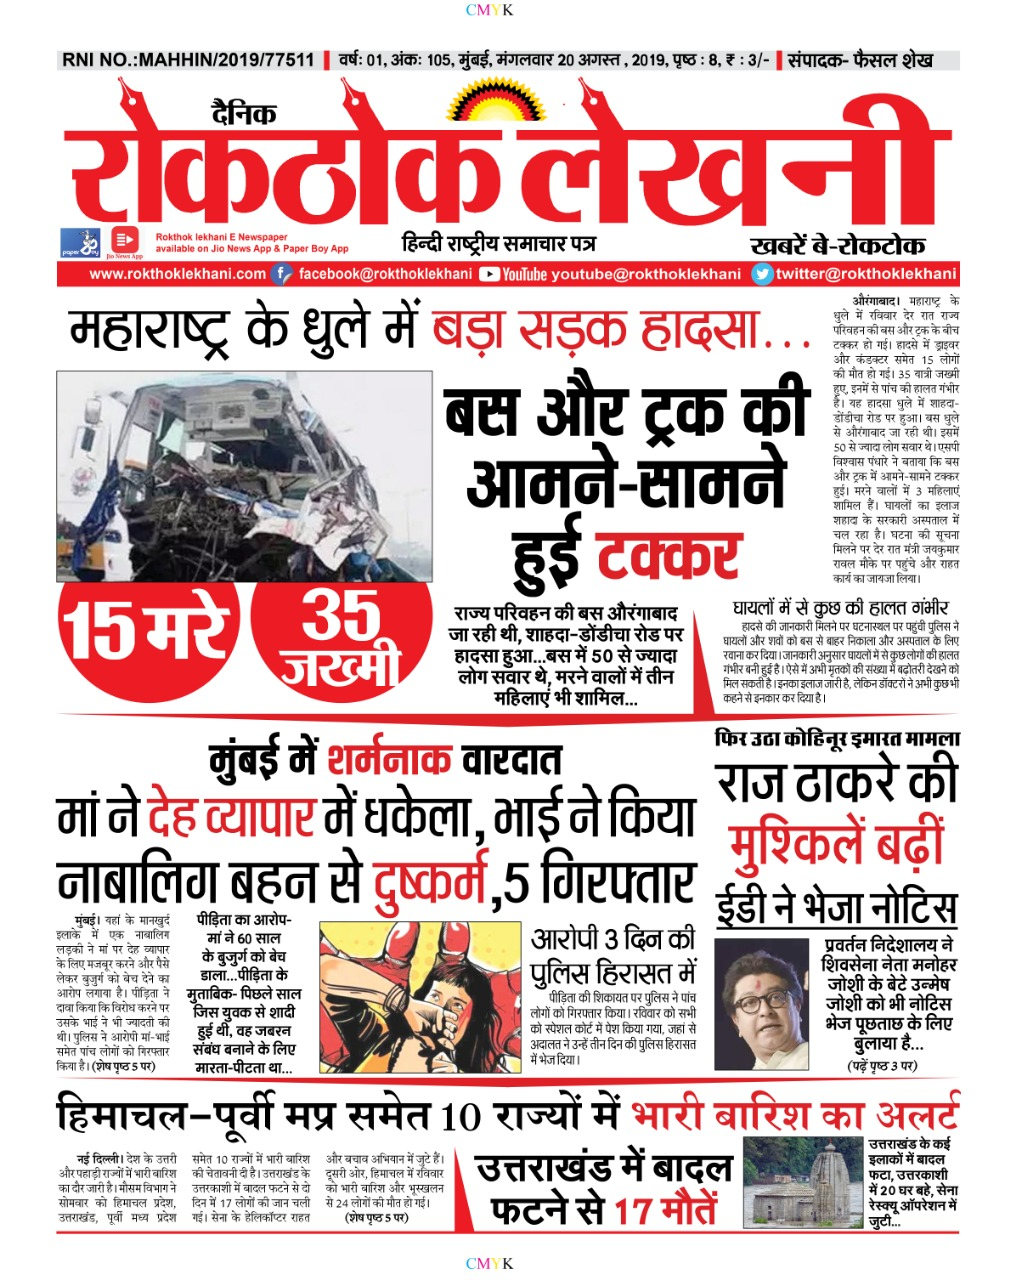 You are currently viewing Rokthok Lekhani E Newspaper 20 August 2019